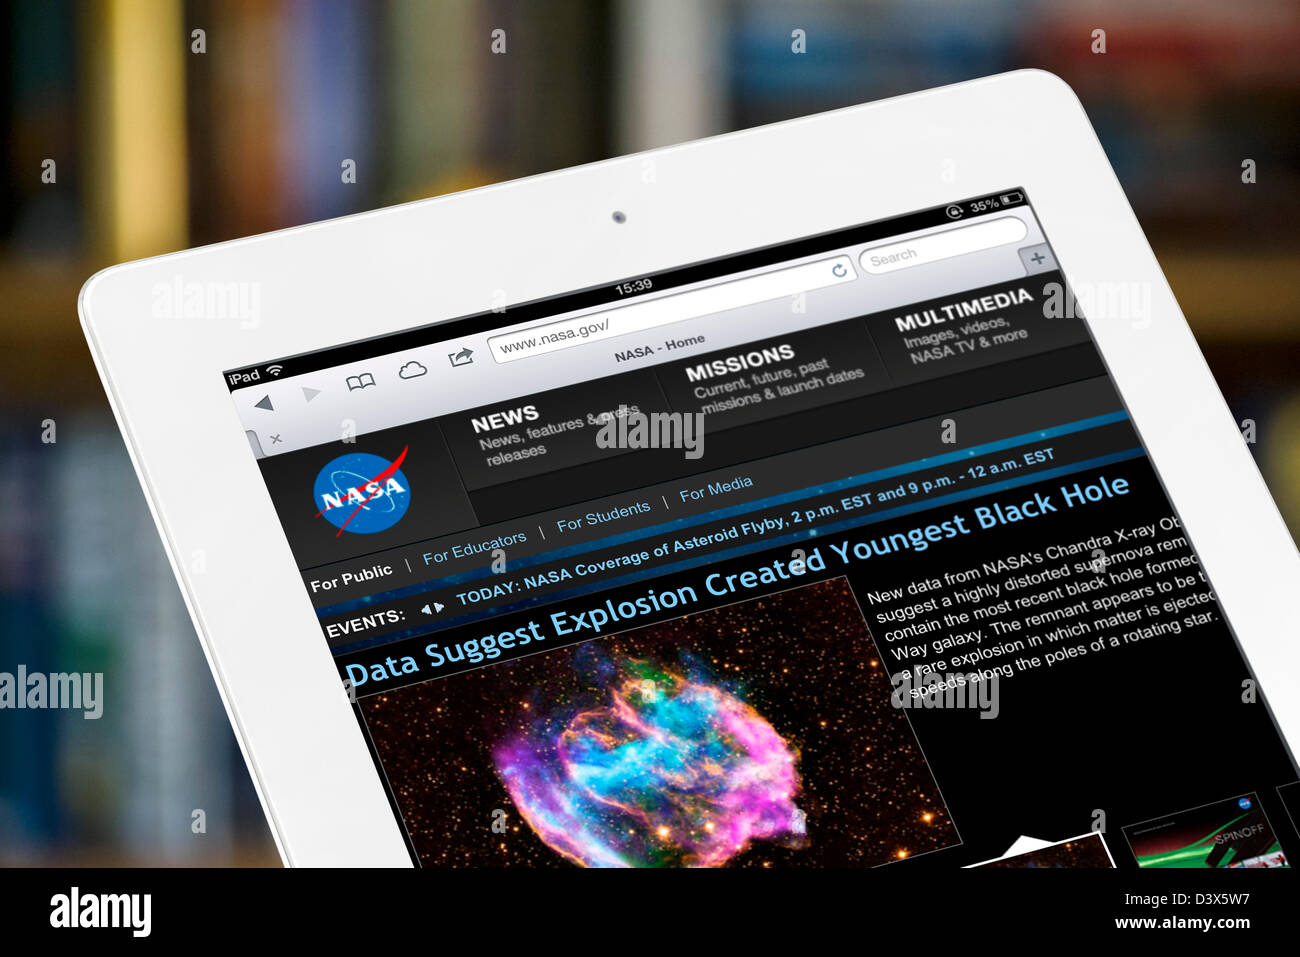 The official NASA website viewed on a 4th generation iPad - Stock Image